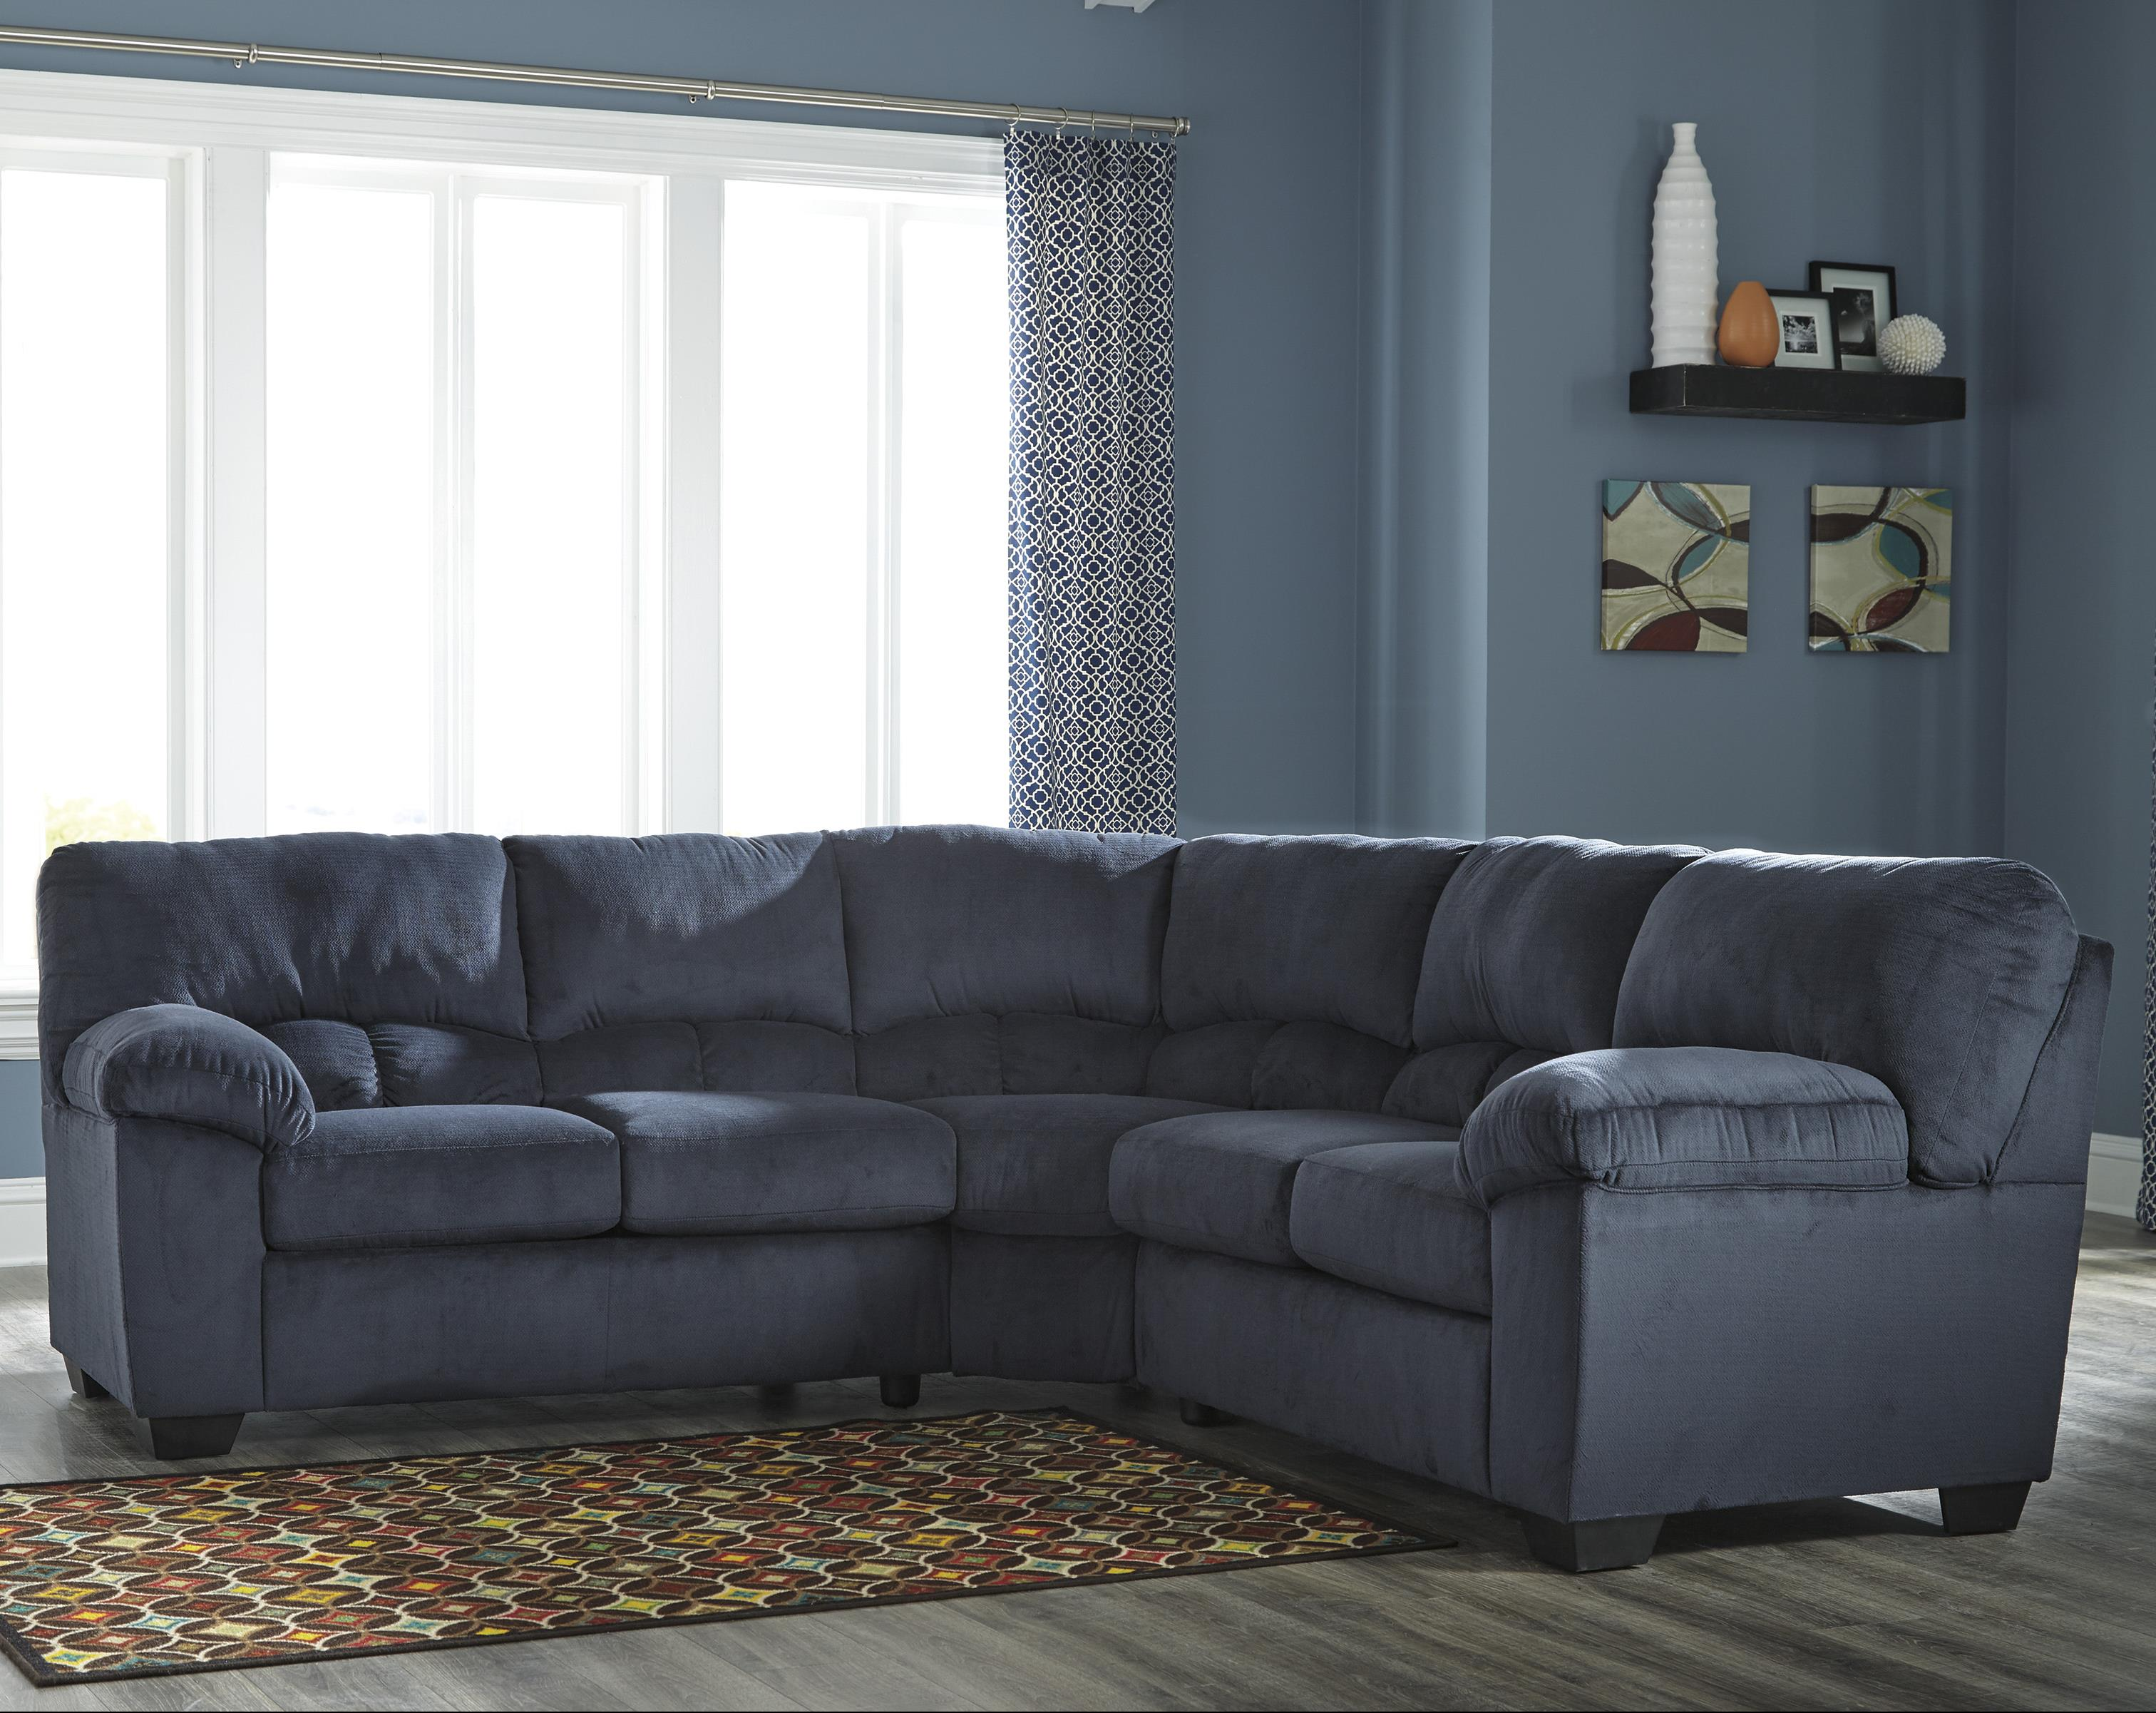 Signature Design by Ashley Dailey Sectional - Item Number: 9540255+56